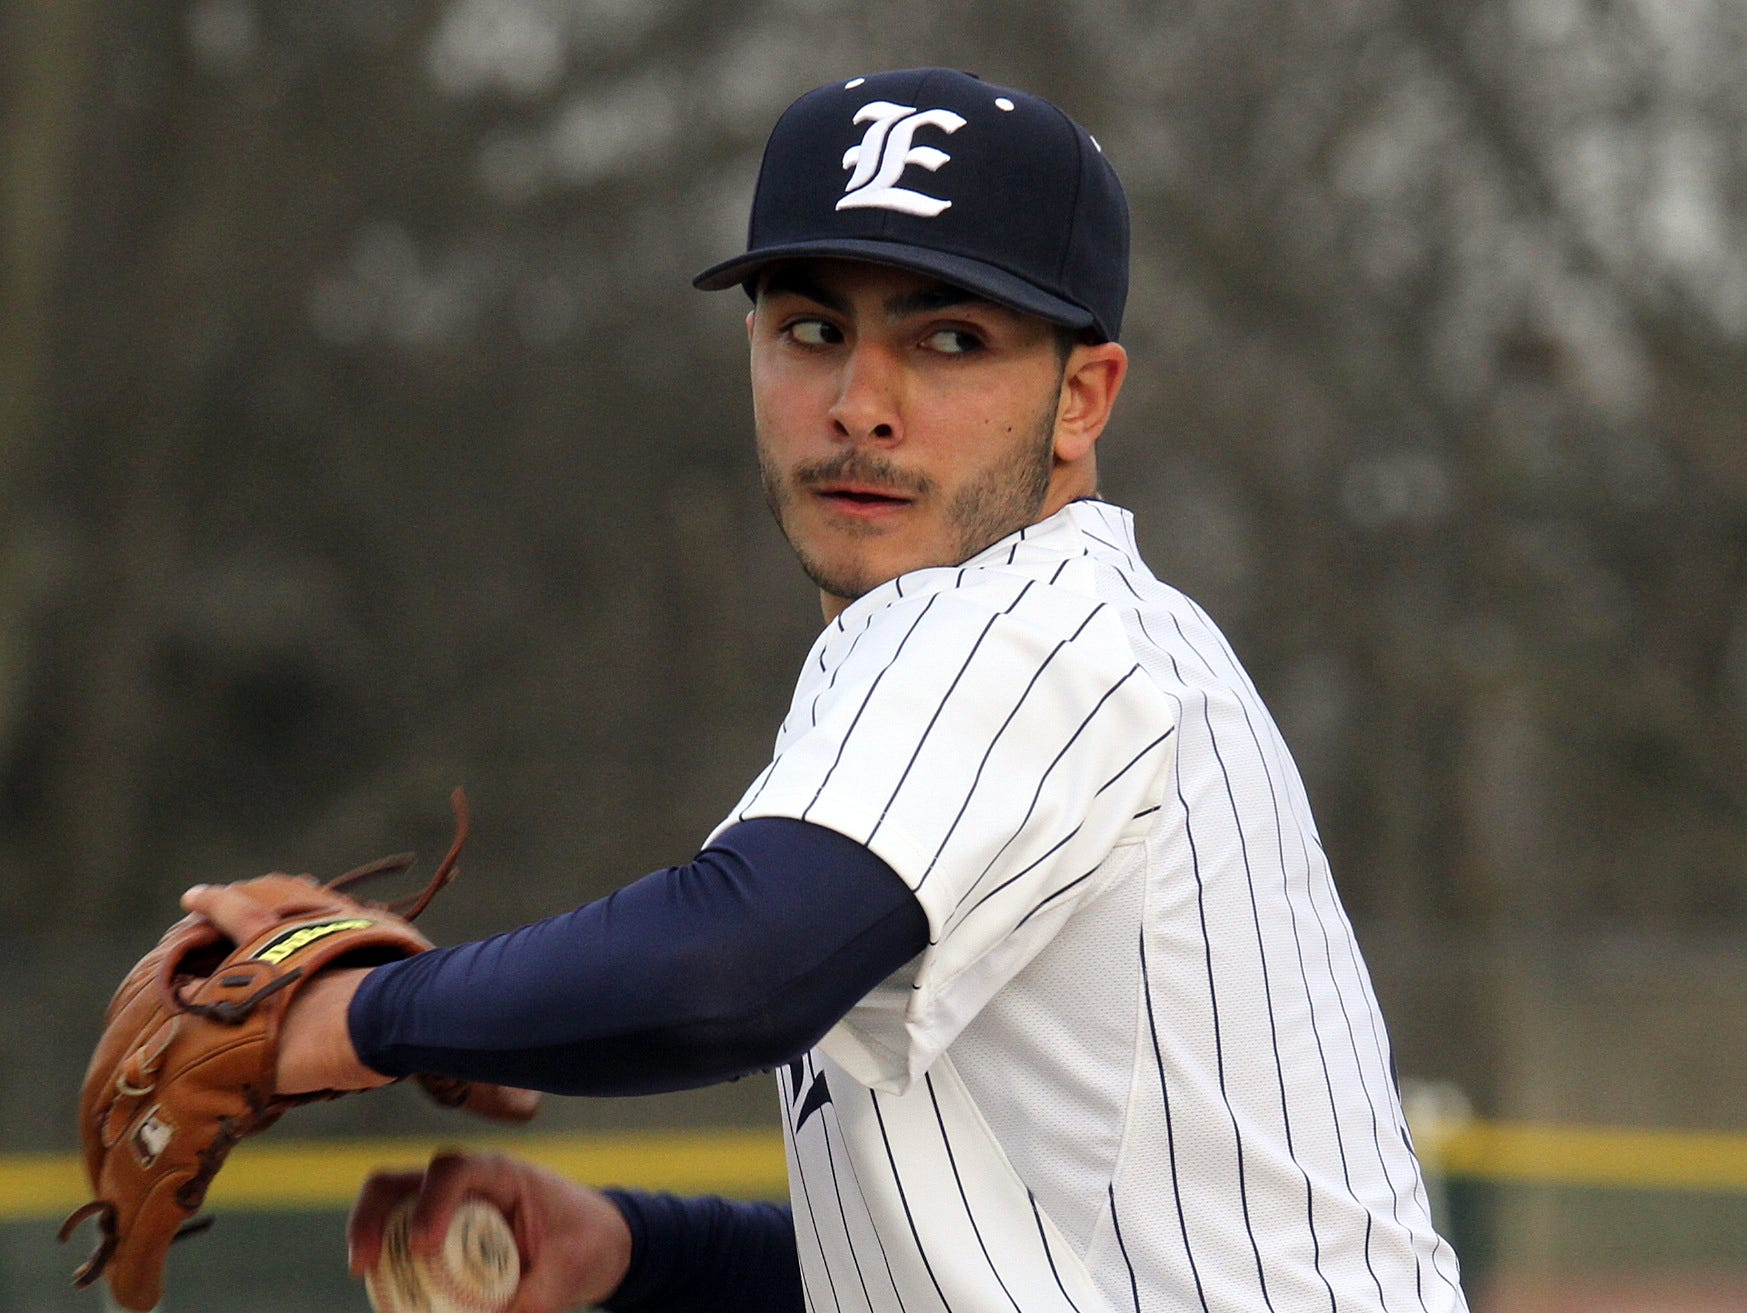 Eastchester's Greg Satriale pitches against Pleasantville during Thursday's game at Eastchester High School. Eastchester defeated Pleasantville 2-1 in 10 innings.